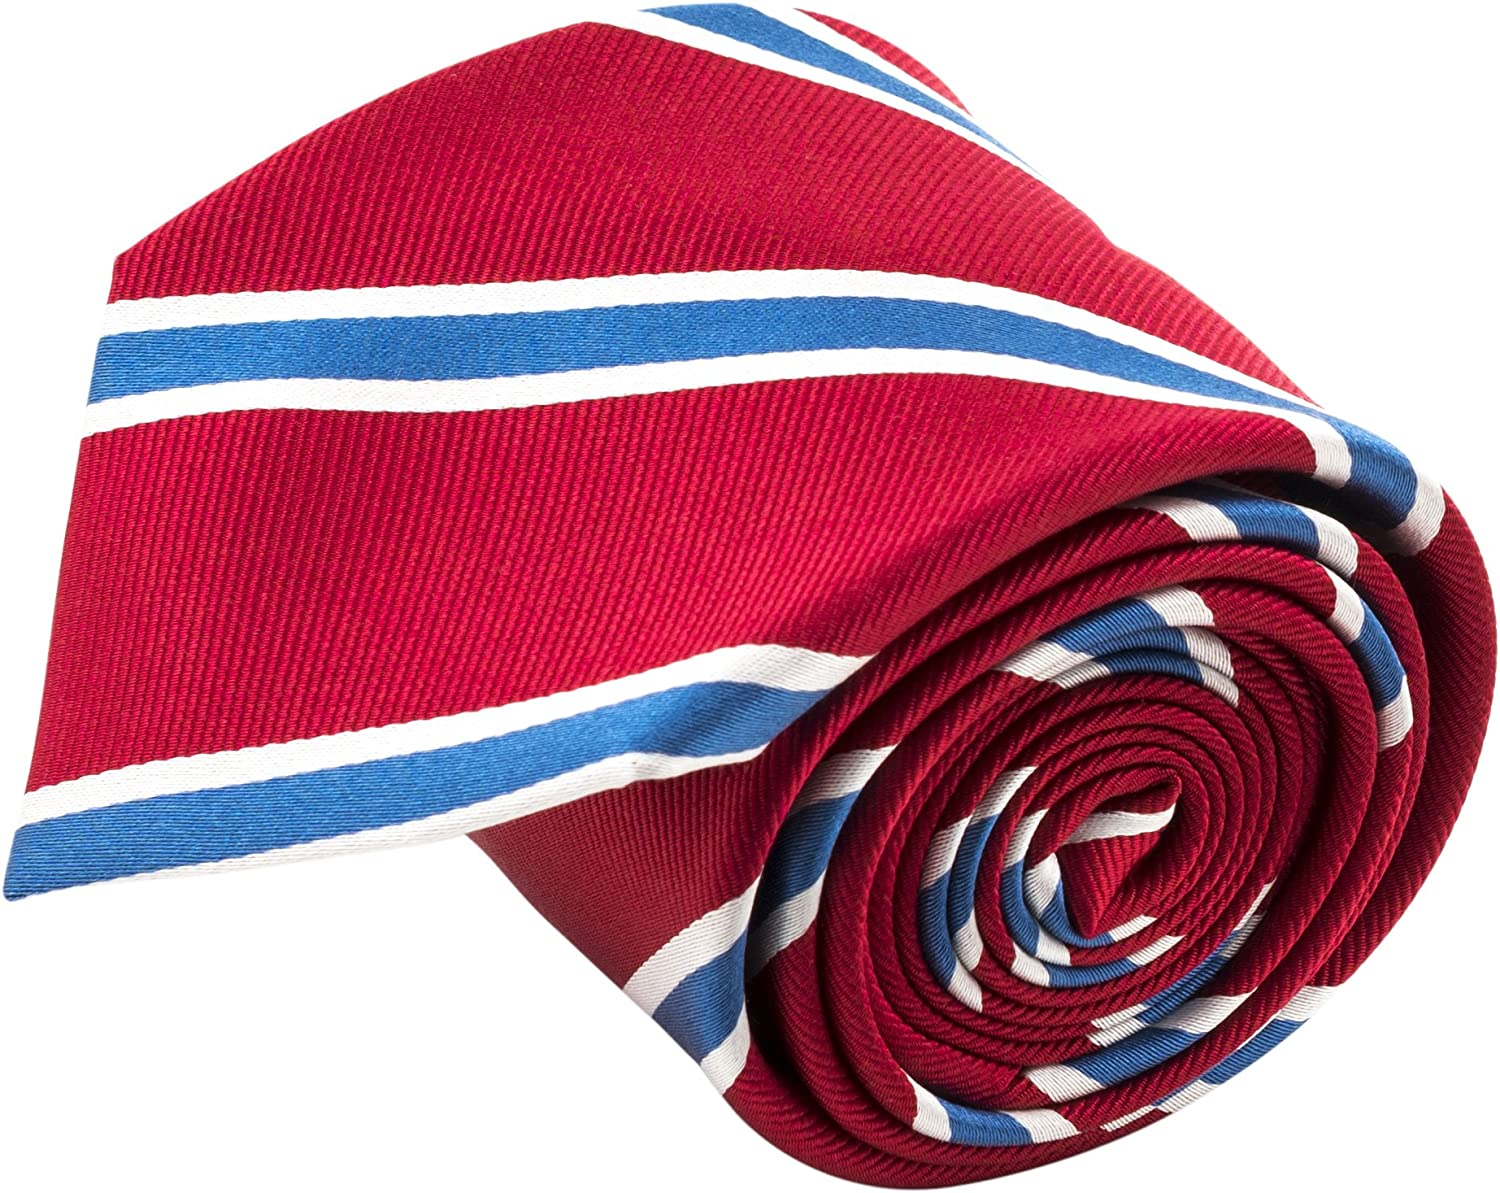 Red and White Check Patterned Handmade 100/% Silk Tie